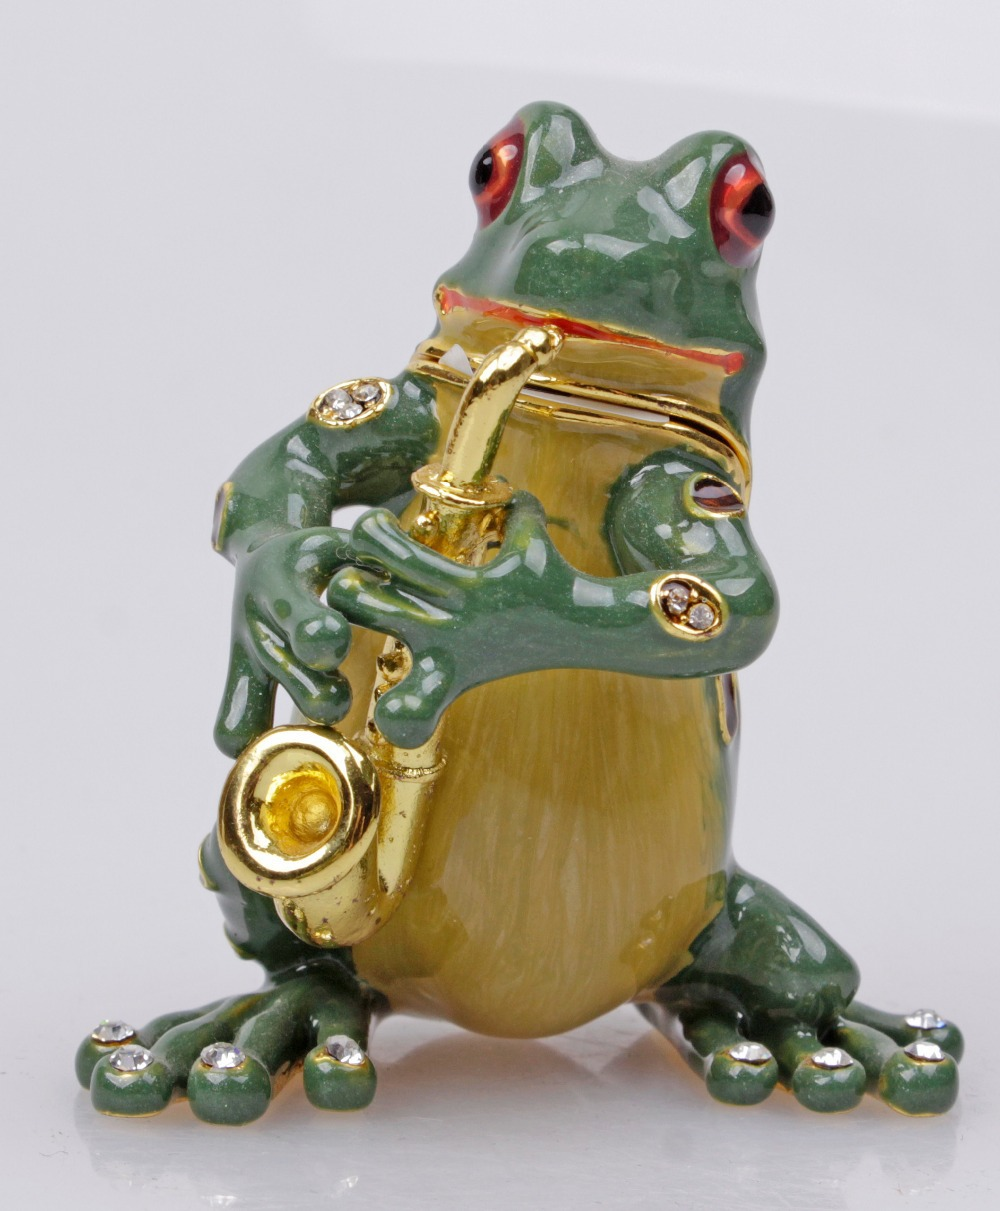 Gorgeous Frog Playing Saxophone Jewelled Trinket Box Jewelry Box with Inlaid Crystal, Pill Box Figurine ...